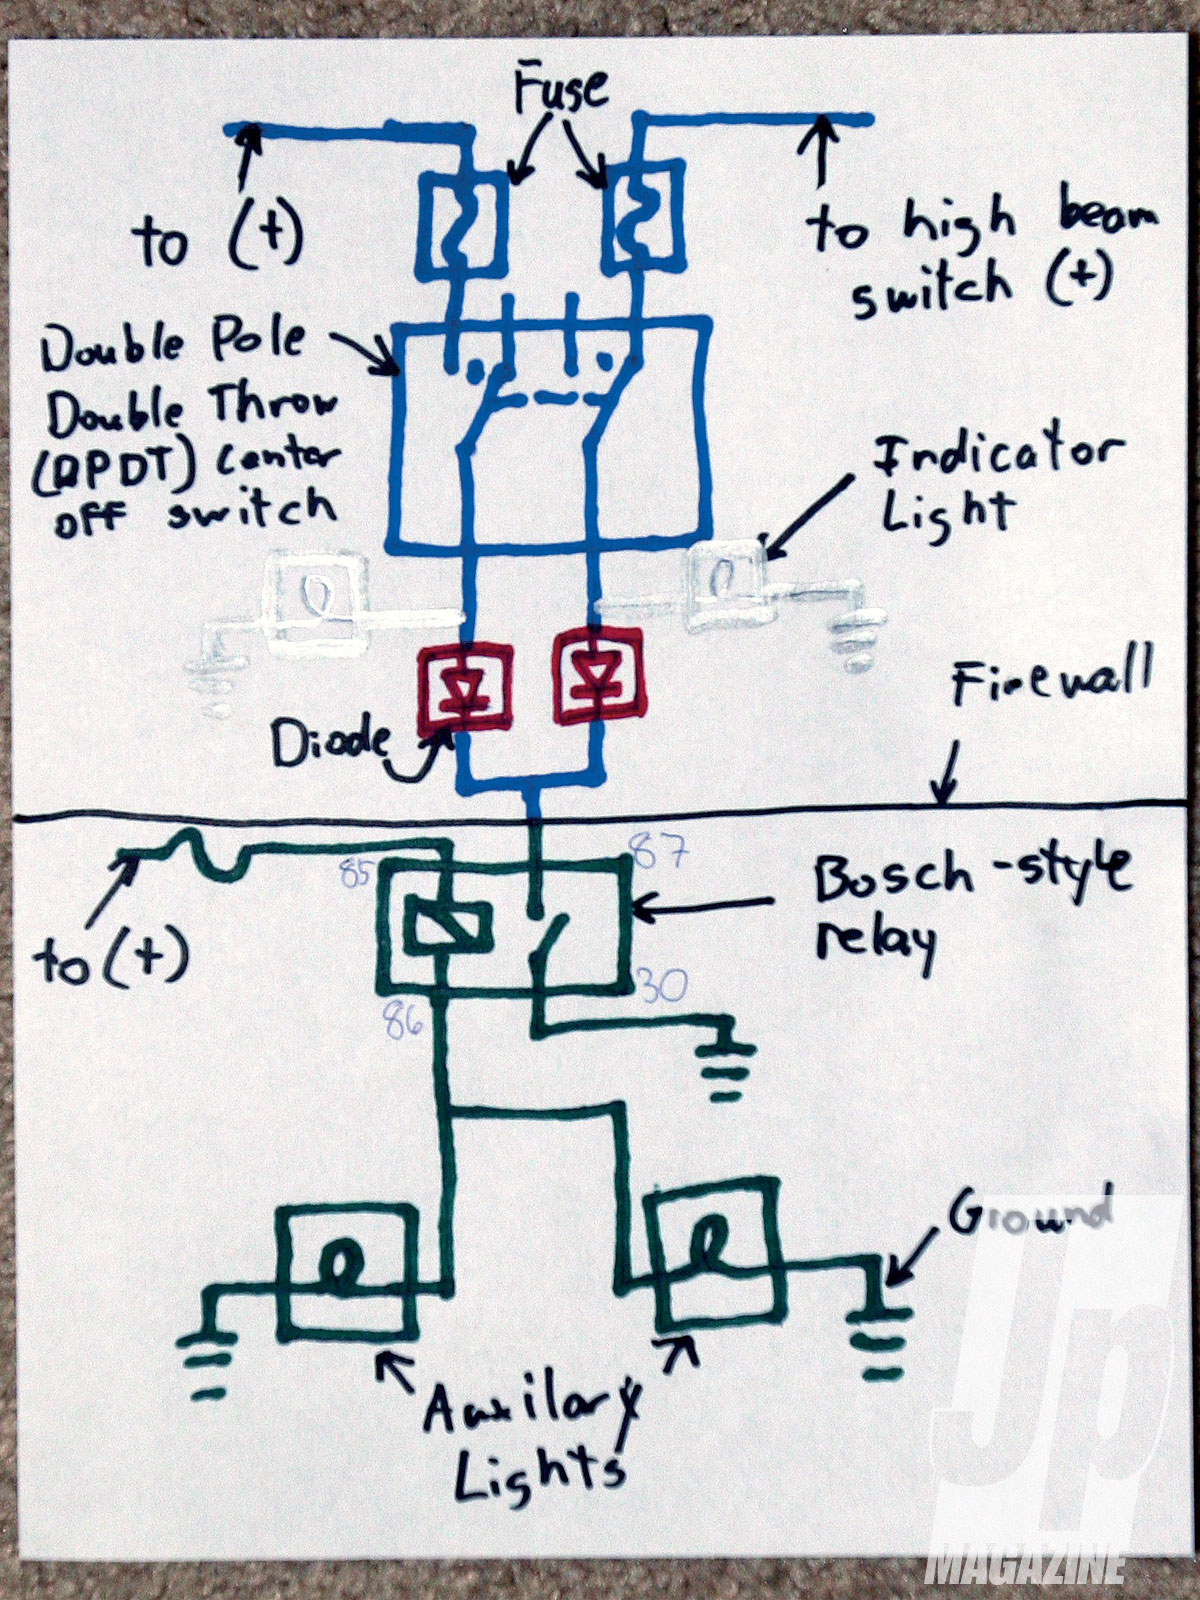 hight resolution of 154 1011 november 2010 randys electrical corner complicated wiring diagram photo 05